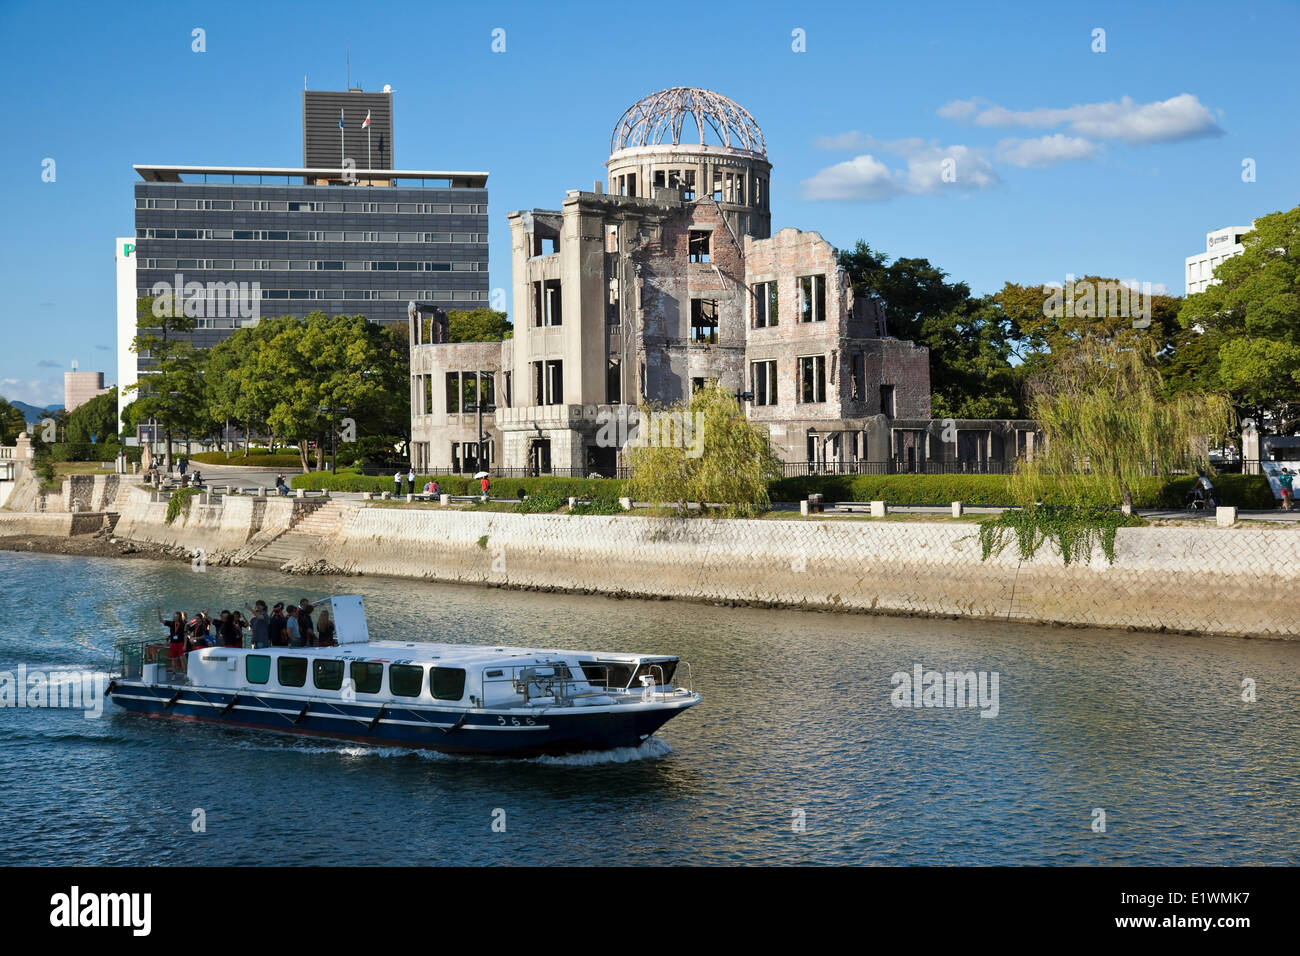 Located in Hiroshima's Peace Memorial Park, the Hiroshima Prefectural Commerchial Exhibition Hall was one of - Stock Image